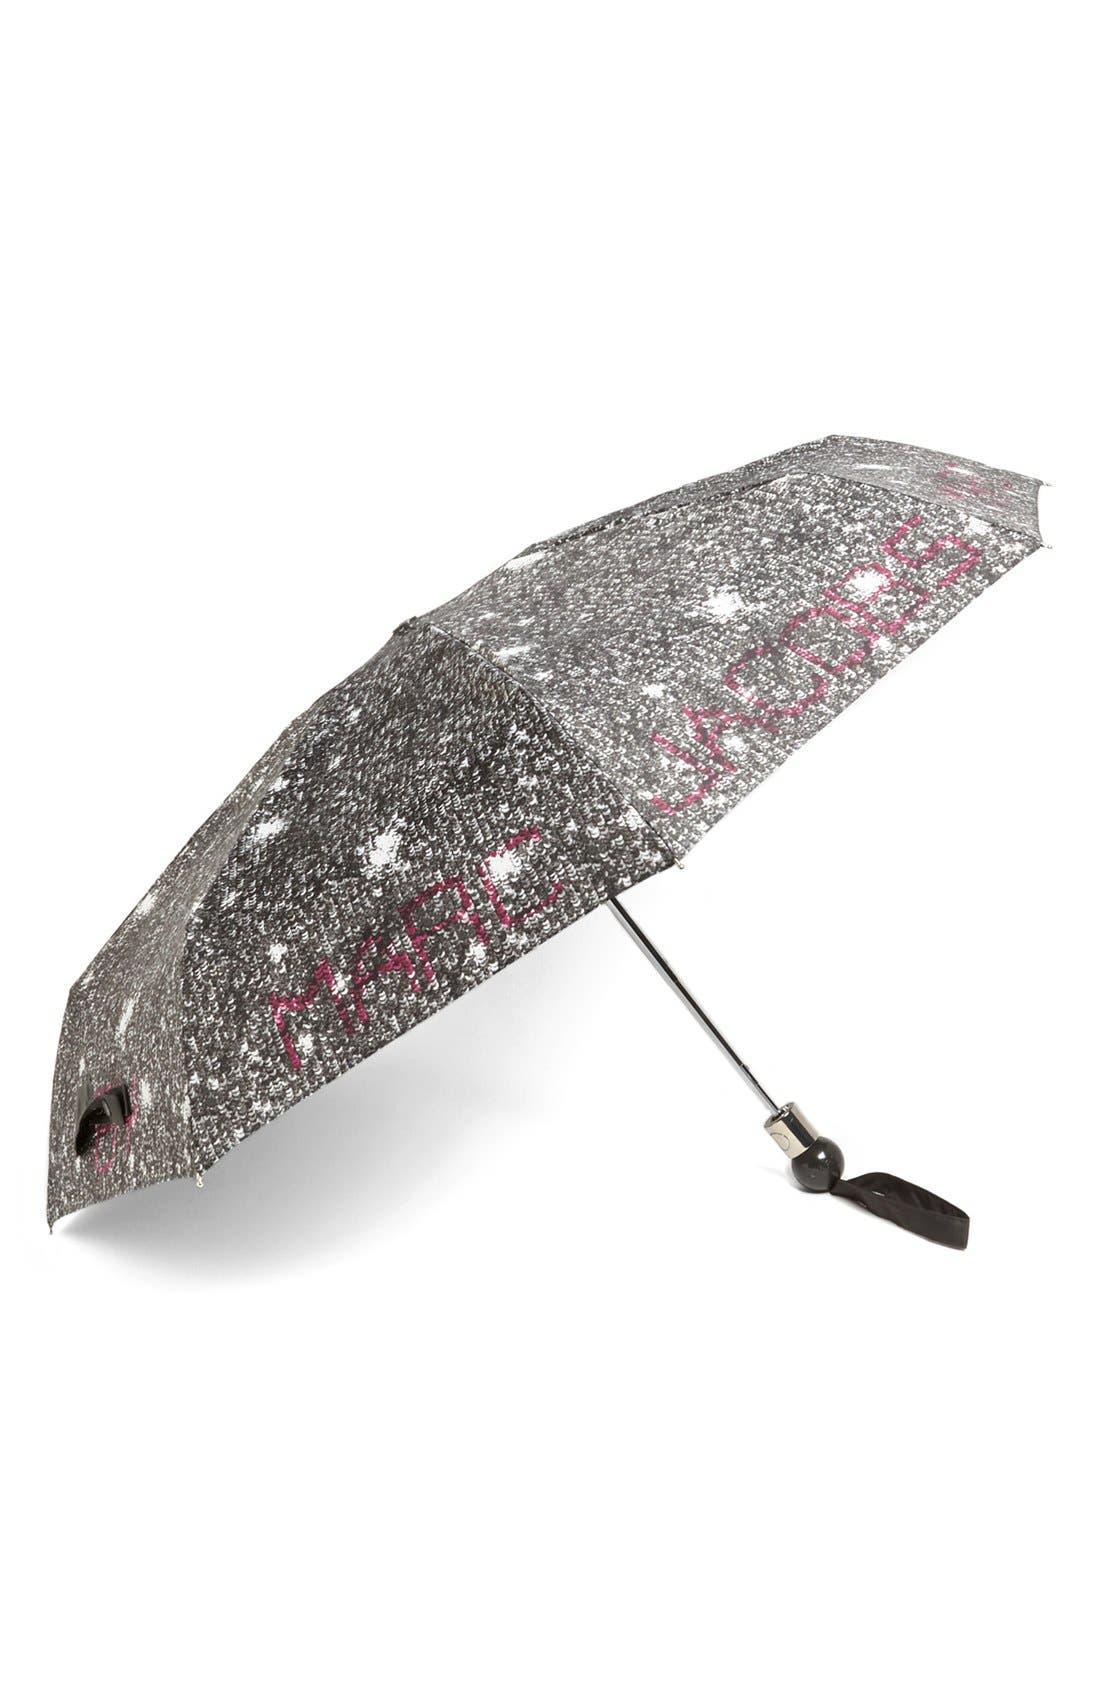 MARC BY MARC JACOBS 'Twilight' Umbrella,                             Main thumbnail 1, color,                             Black Multi